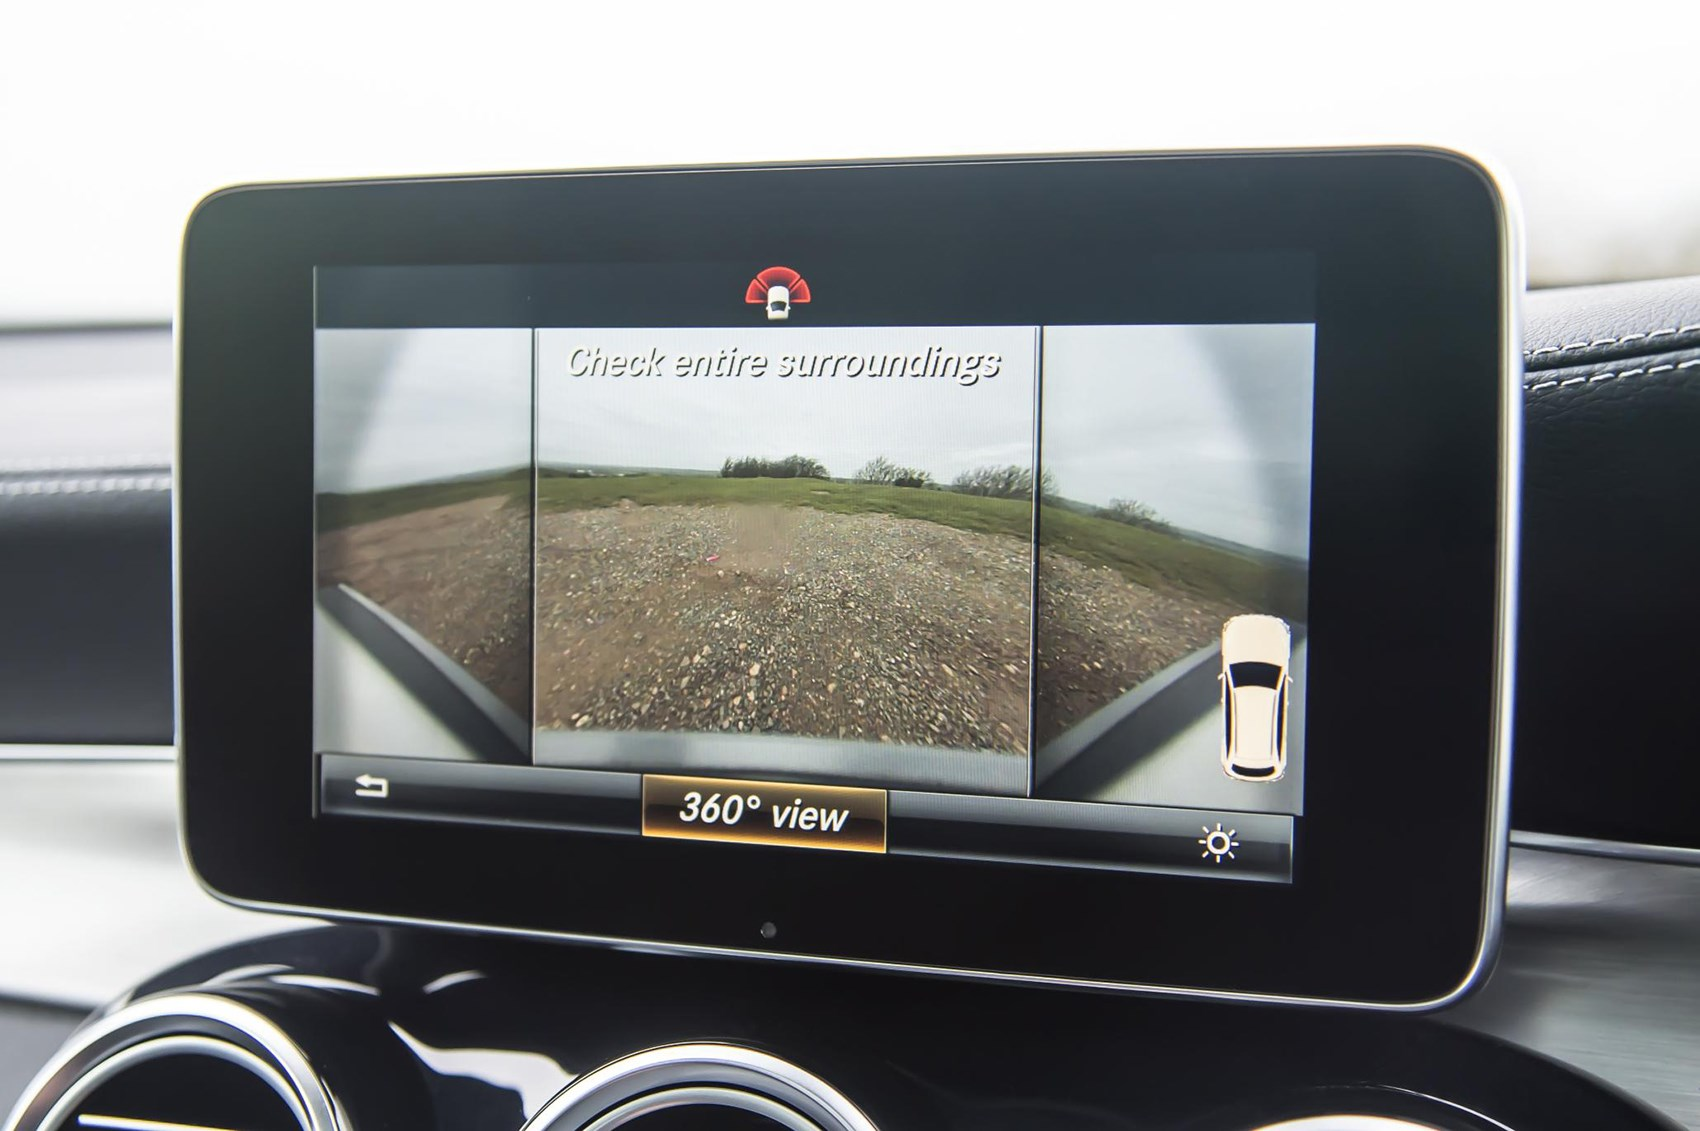 360-degree parking camera a boon for tight spaces